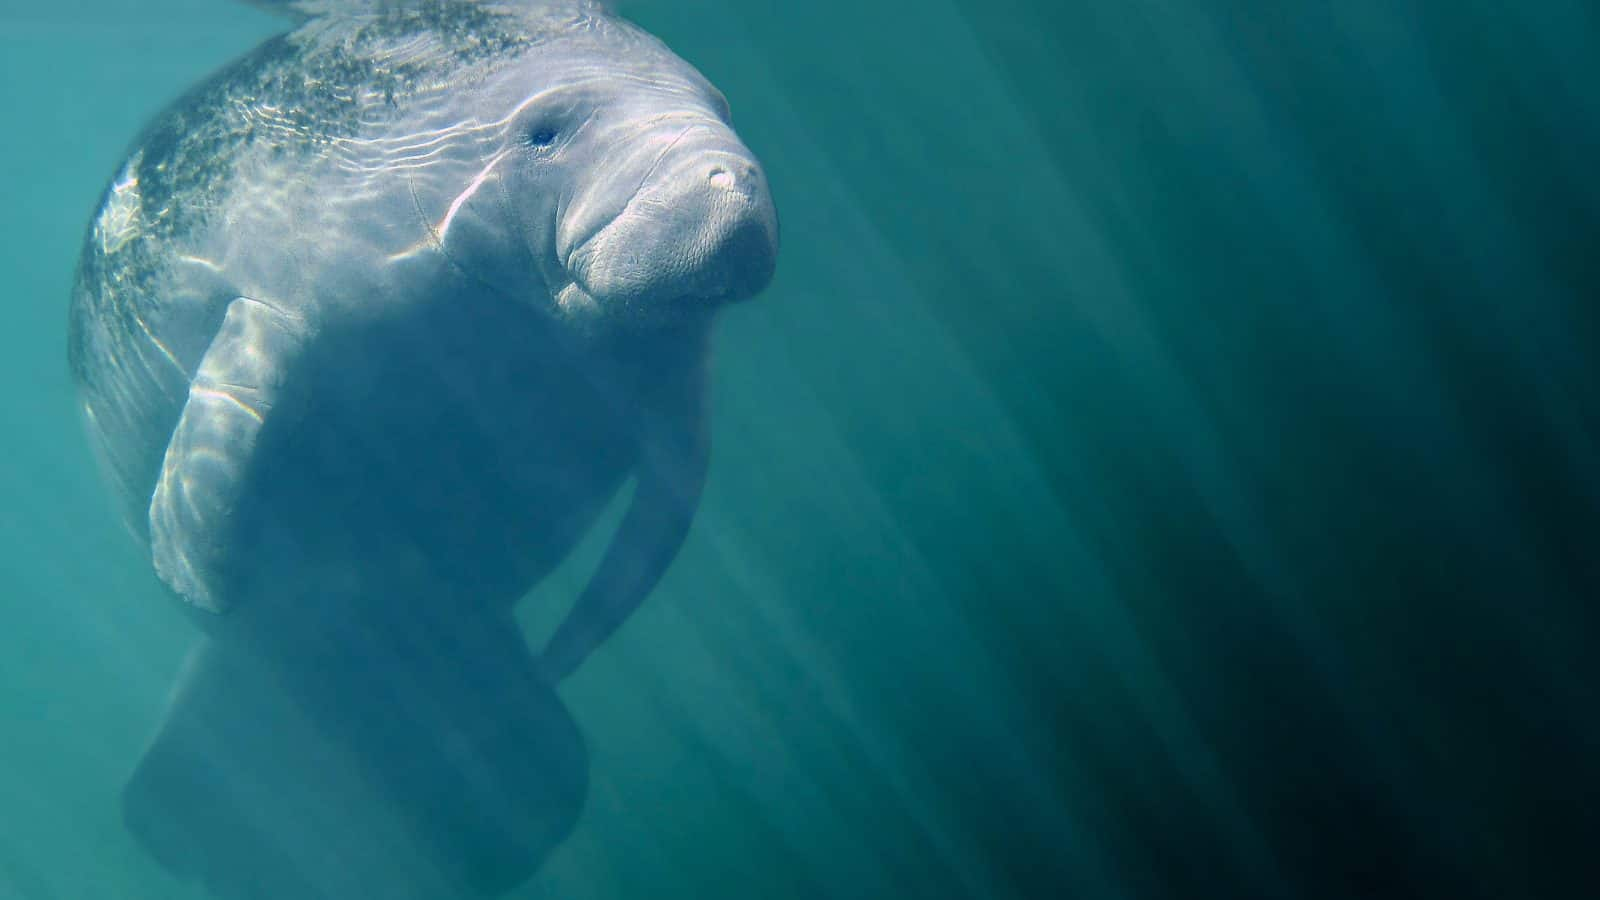 A manatee bathes in the sunlight glittering down from the water's surface.